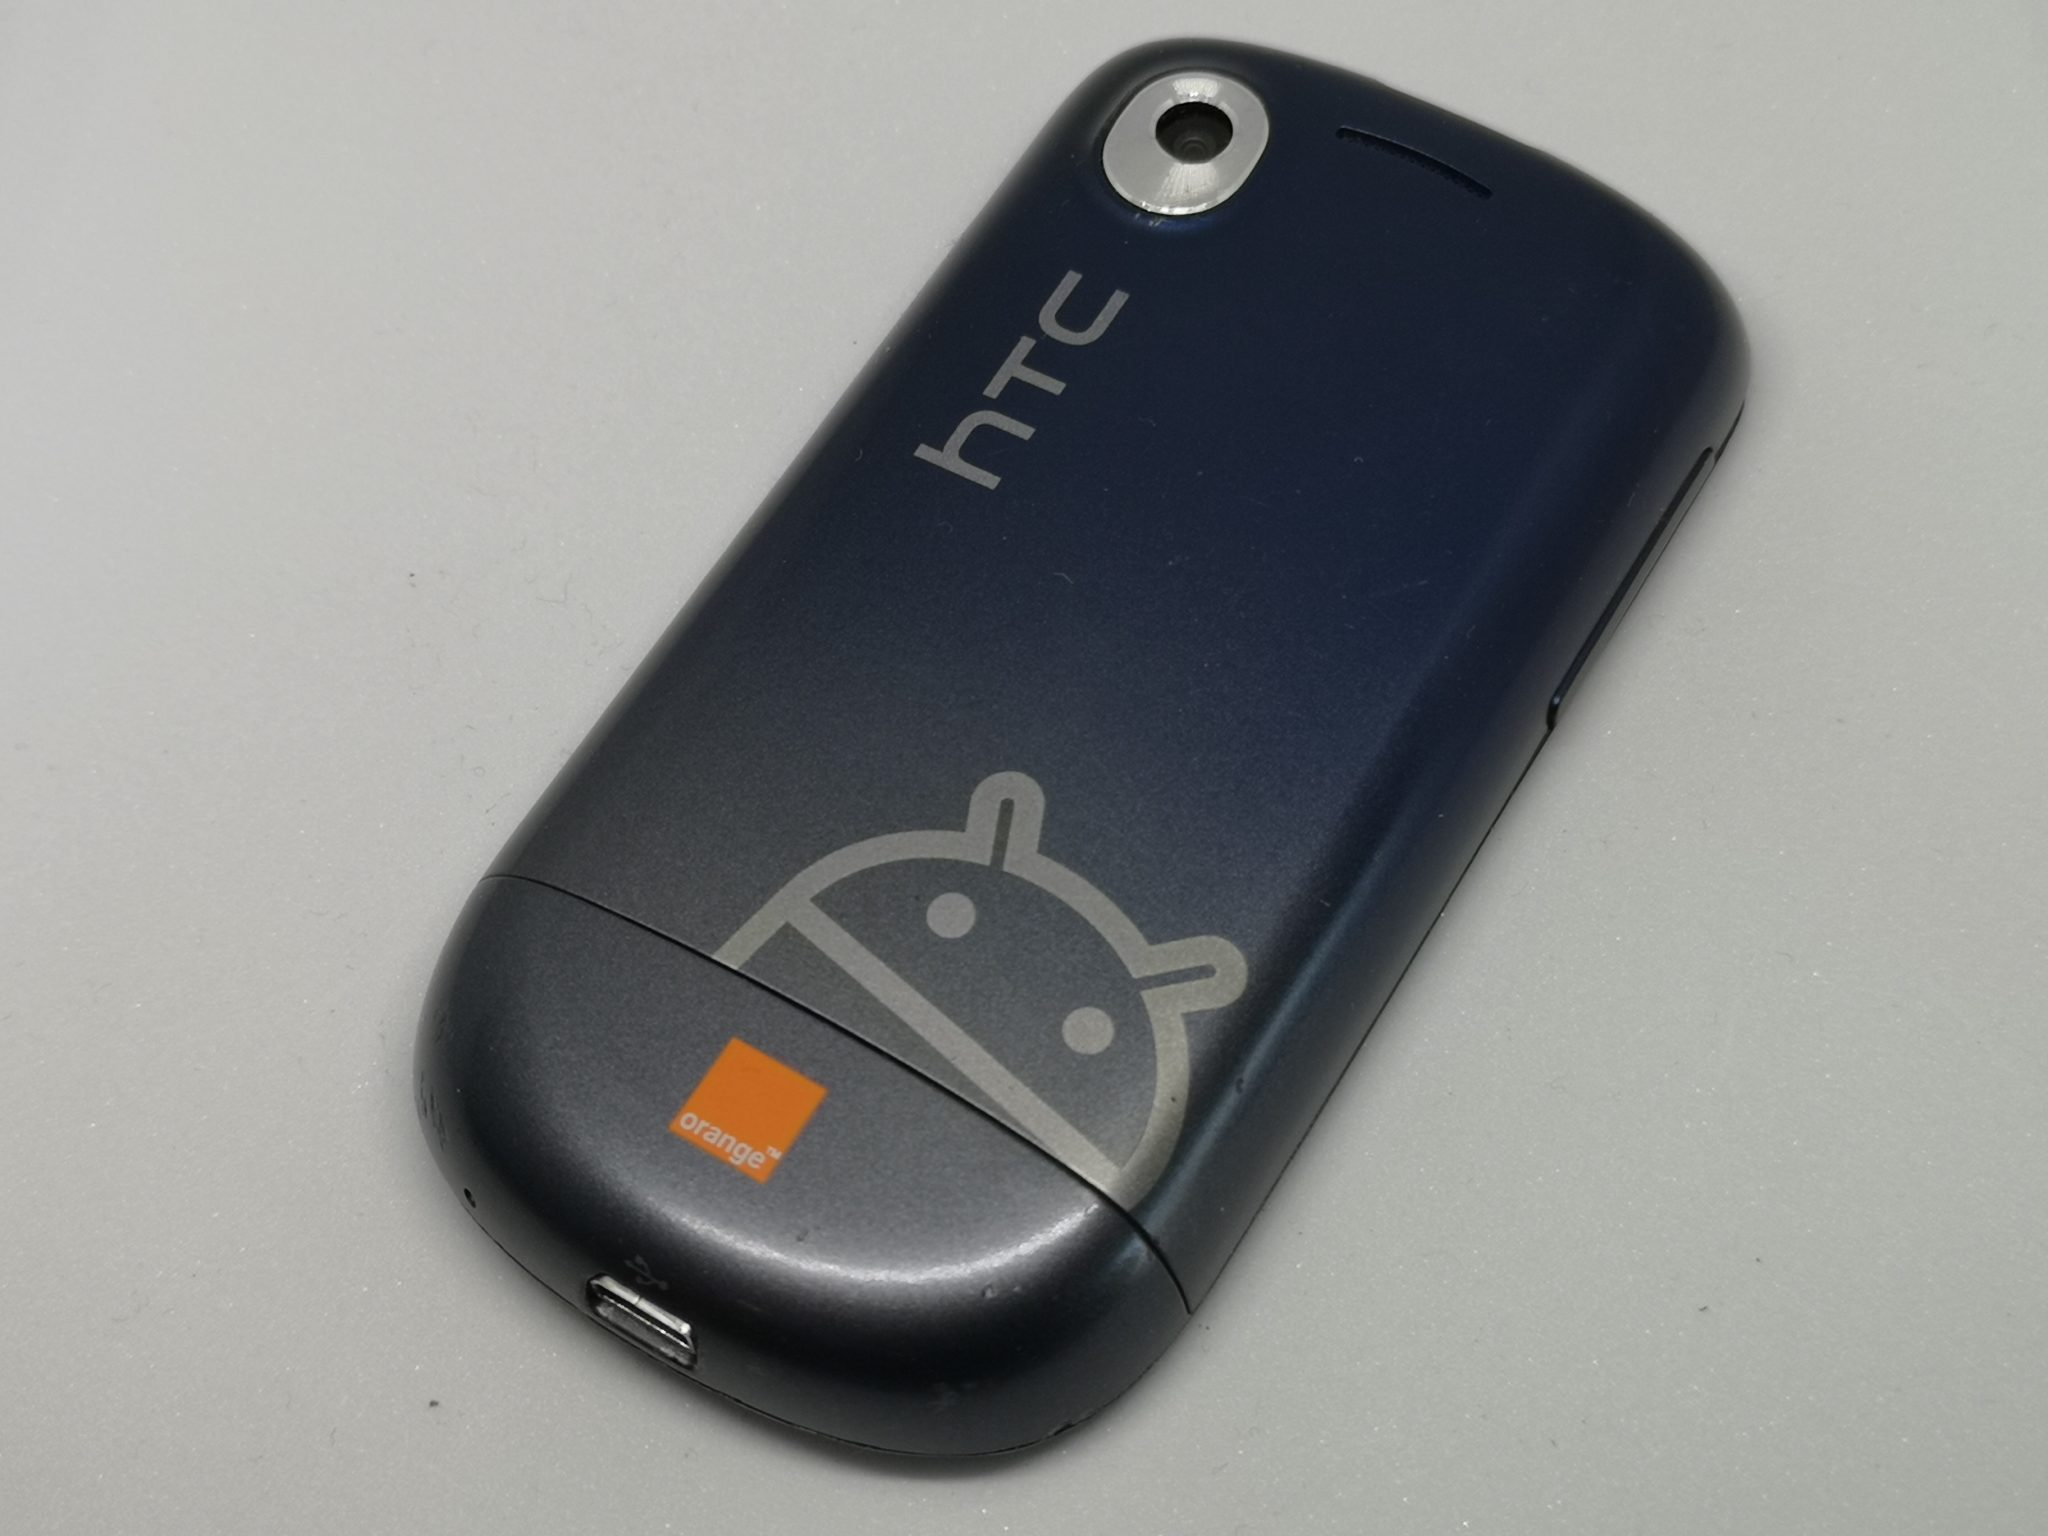 HTC Tattoo Review - Classic Android Handset with Small Screen